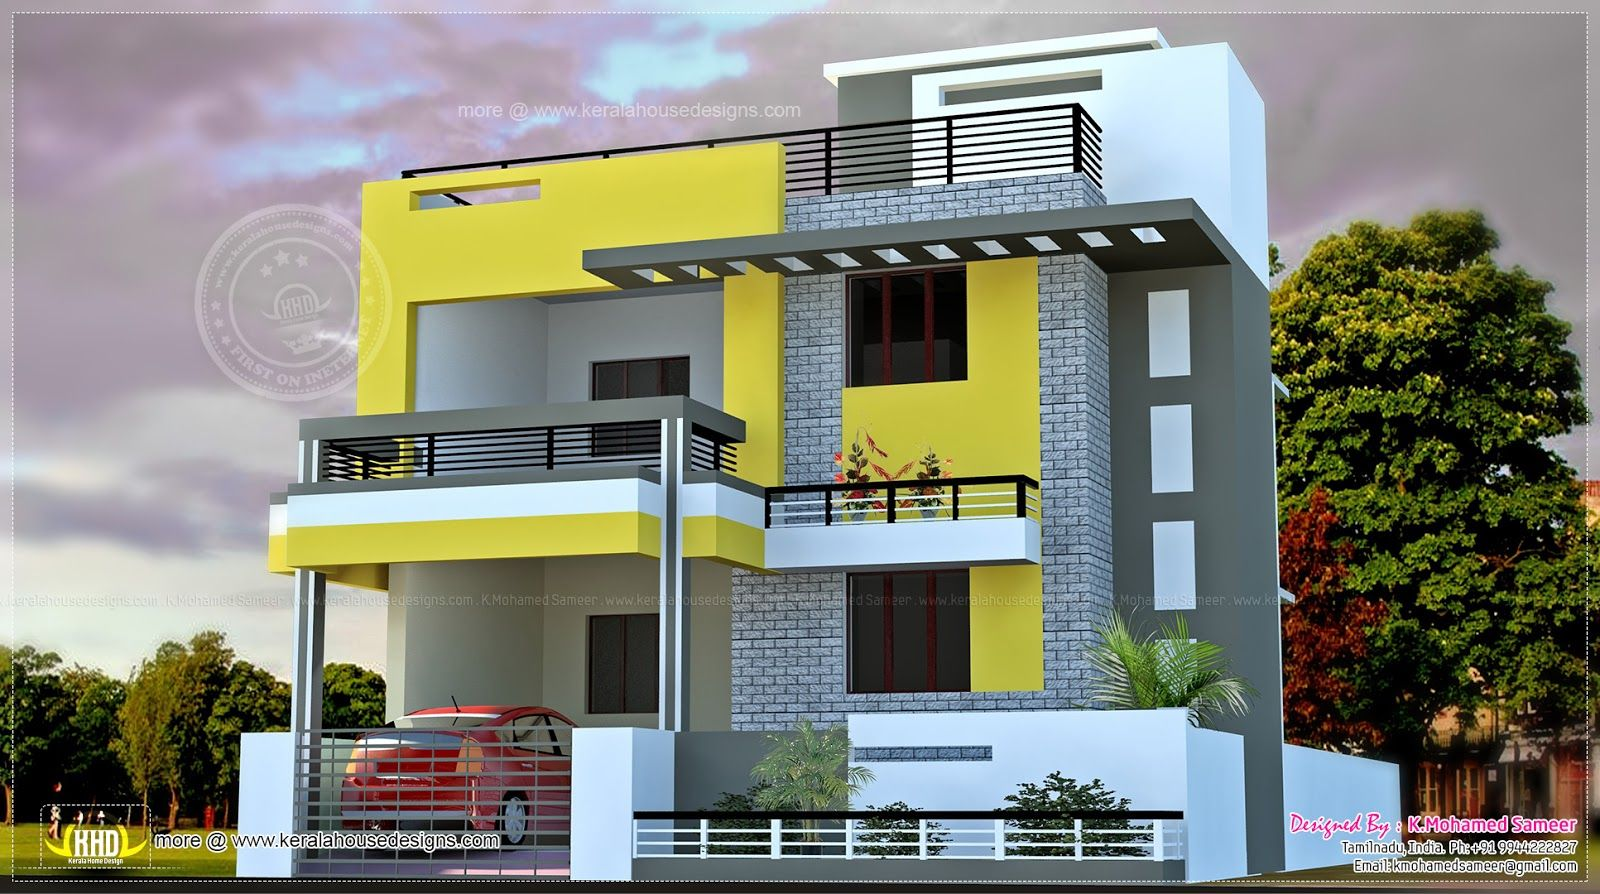 Elevations of residential buildings in indian photo for Small house elevation in india